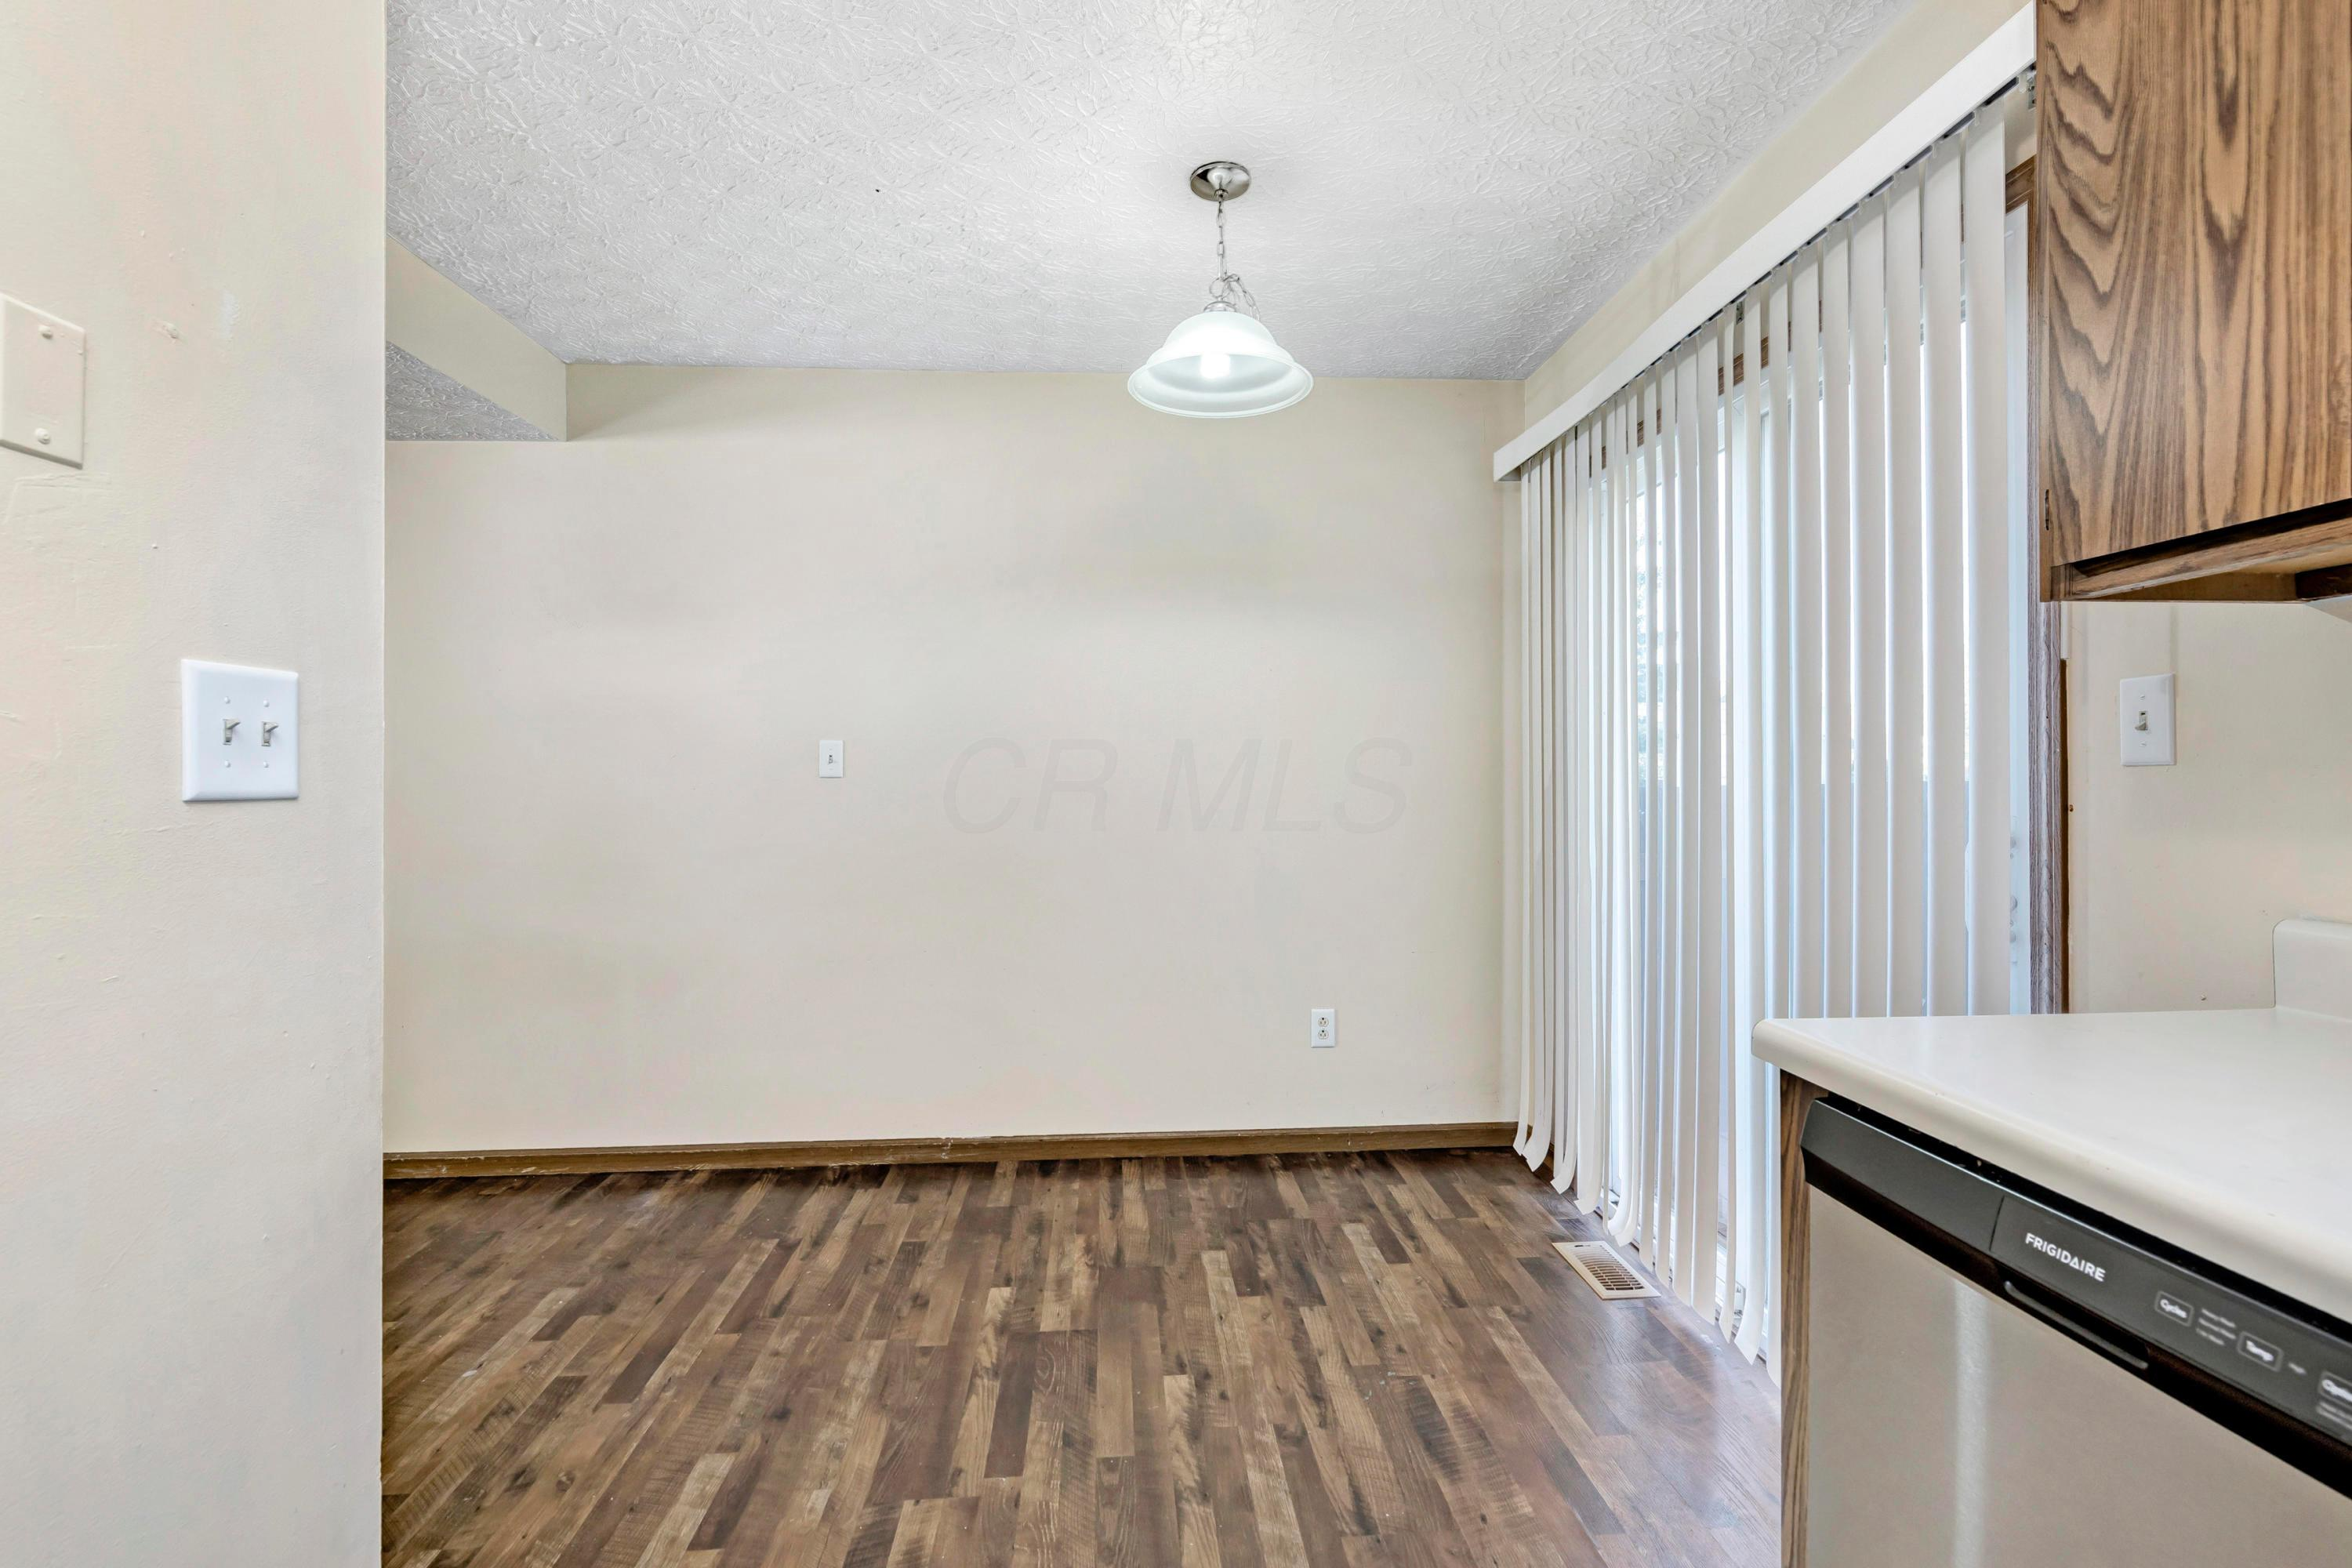 Condo Shared Wall for sale 926 Noddymill Lane, Columbus, OH 43085, MLS# 220039181